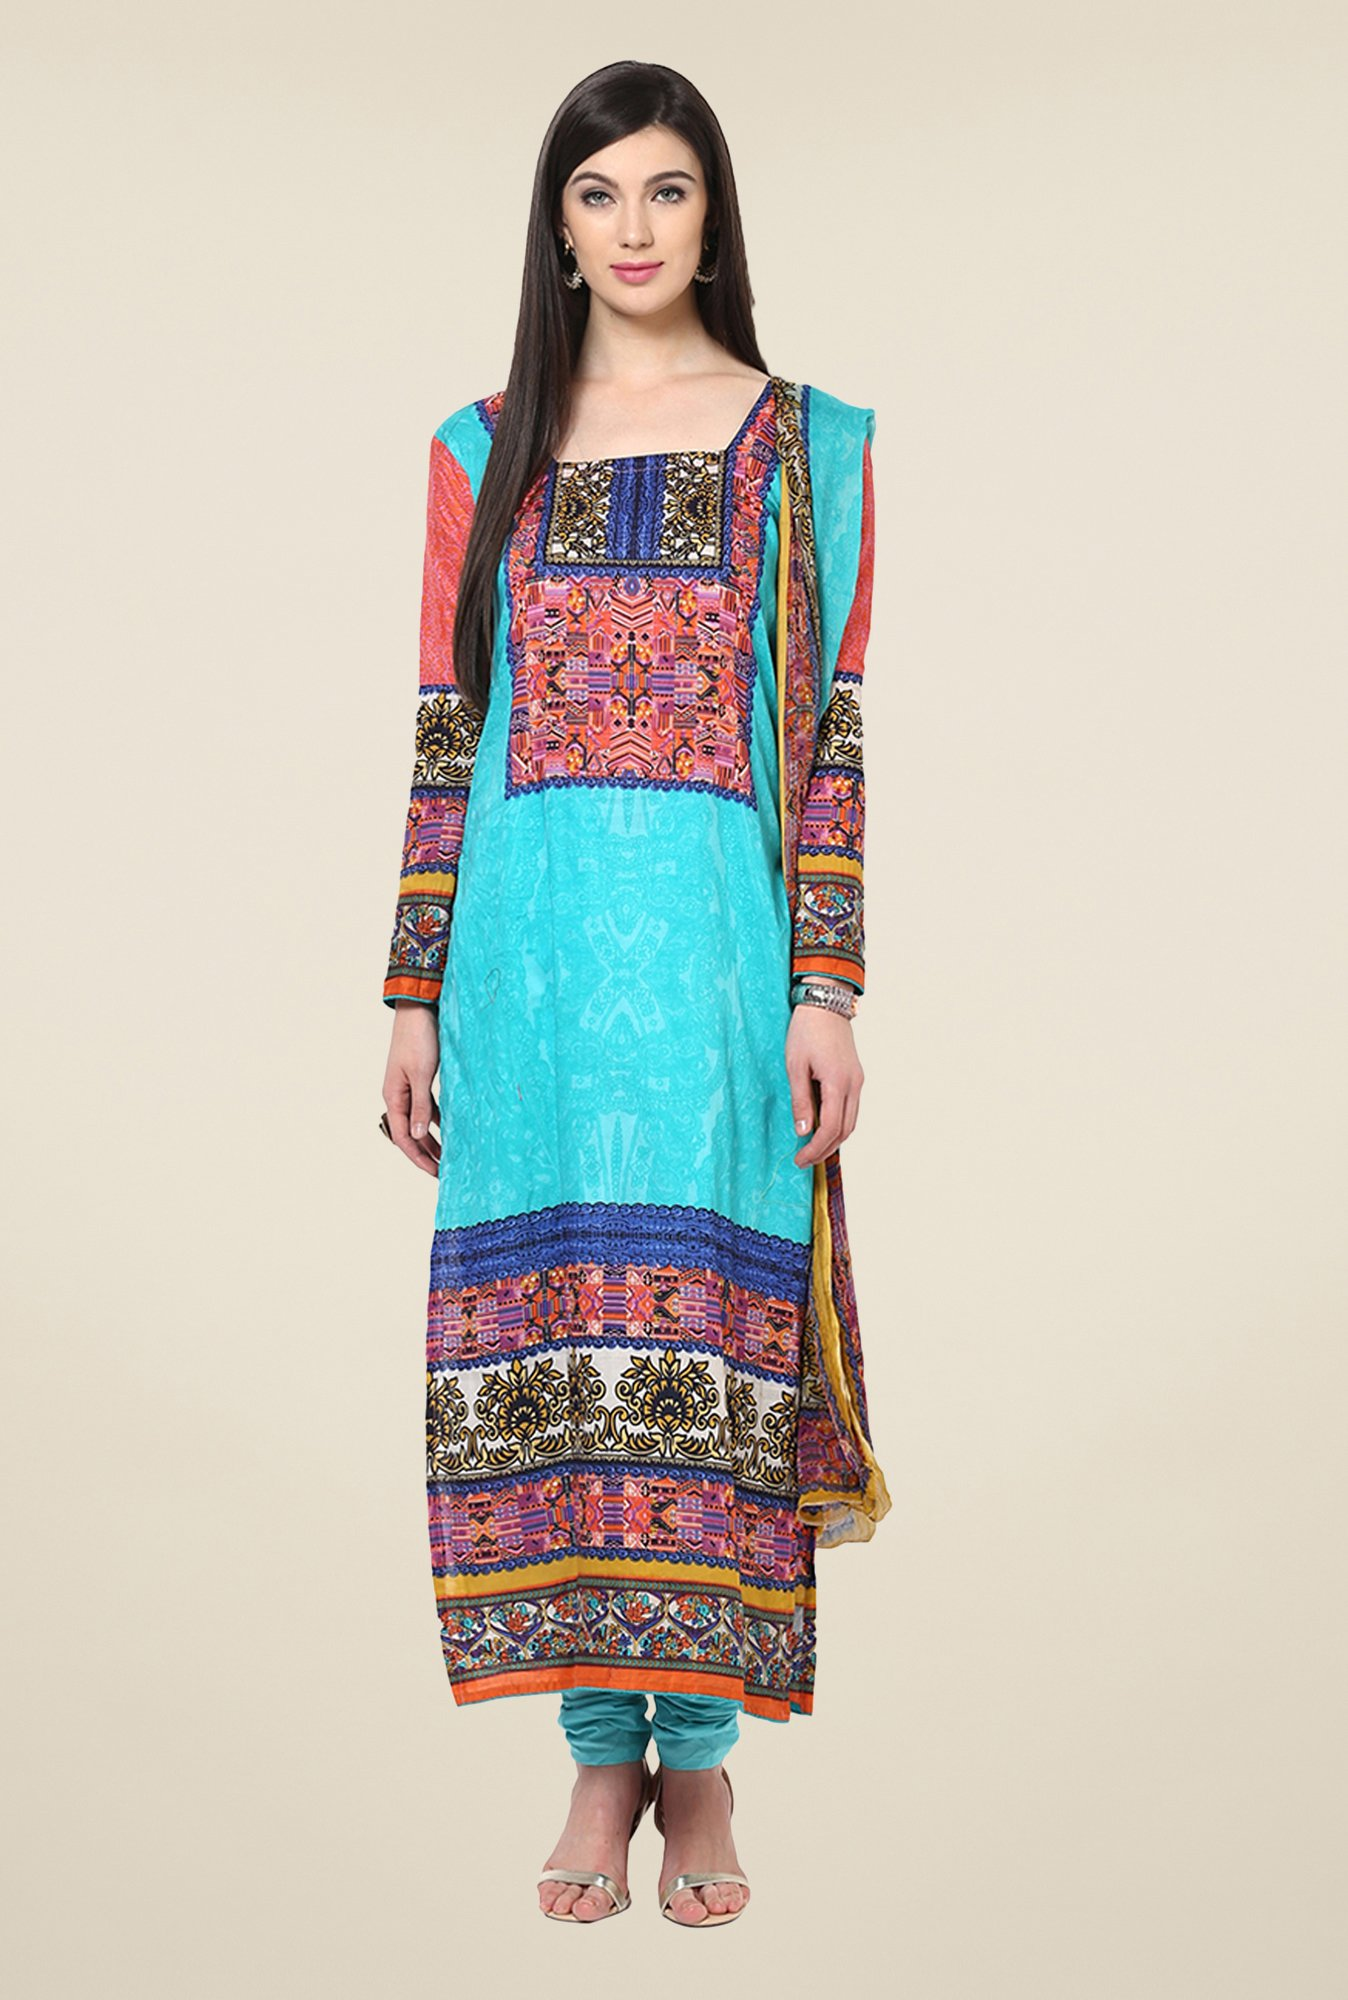 Yepme Calista Turquoise Unstitched Suit Set